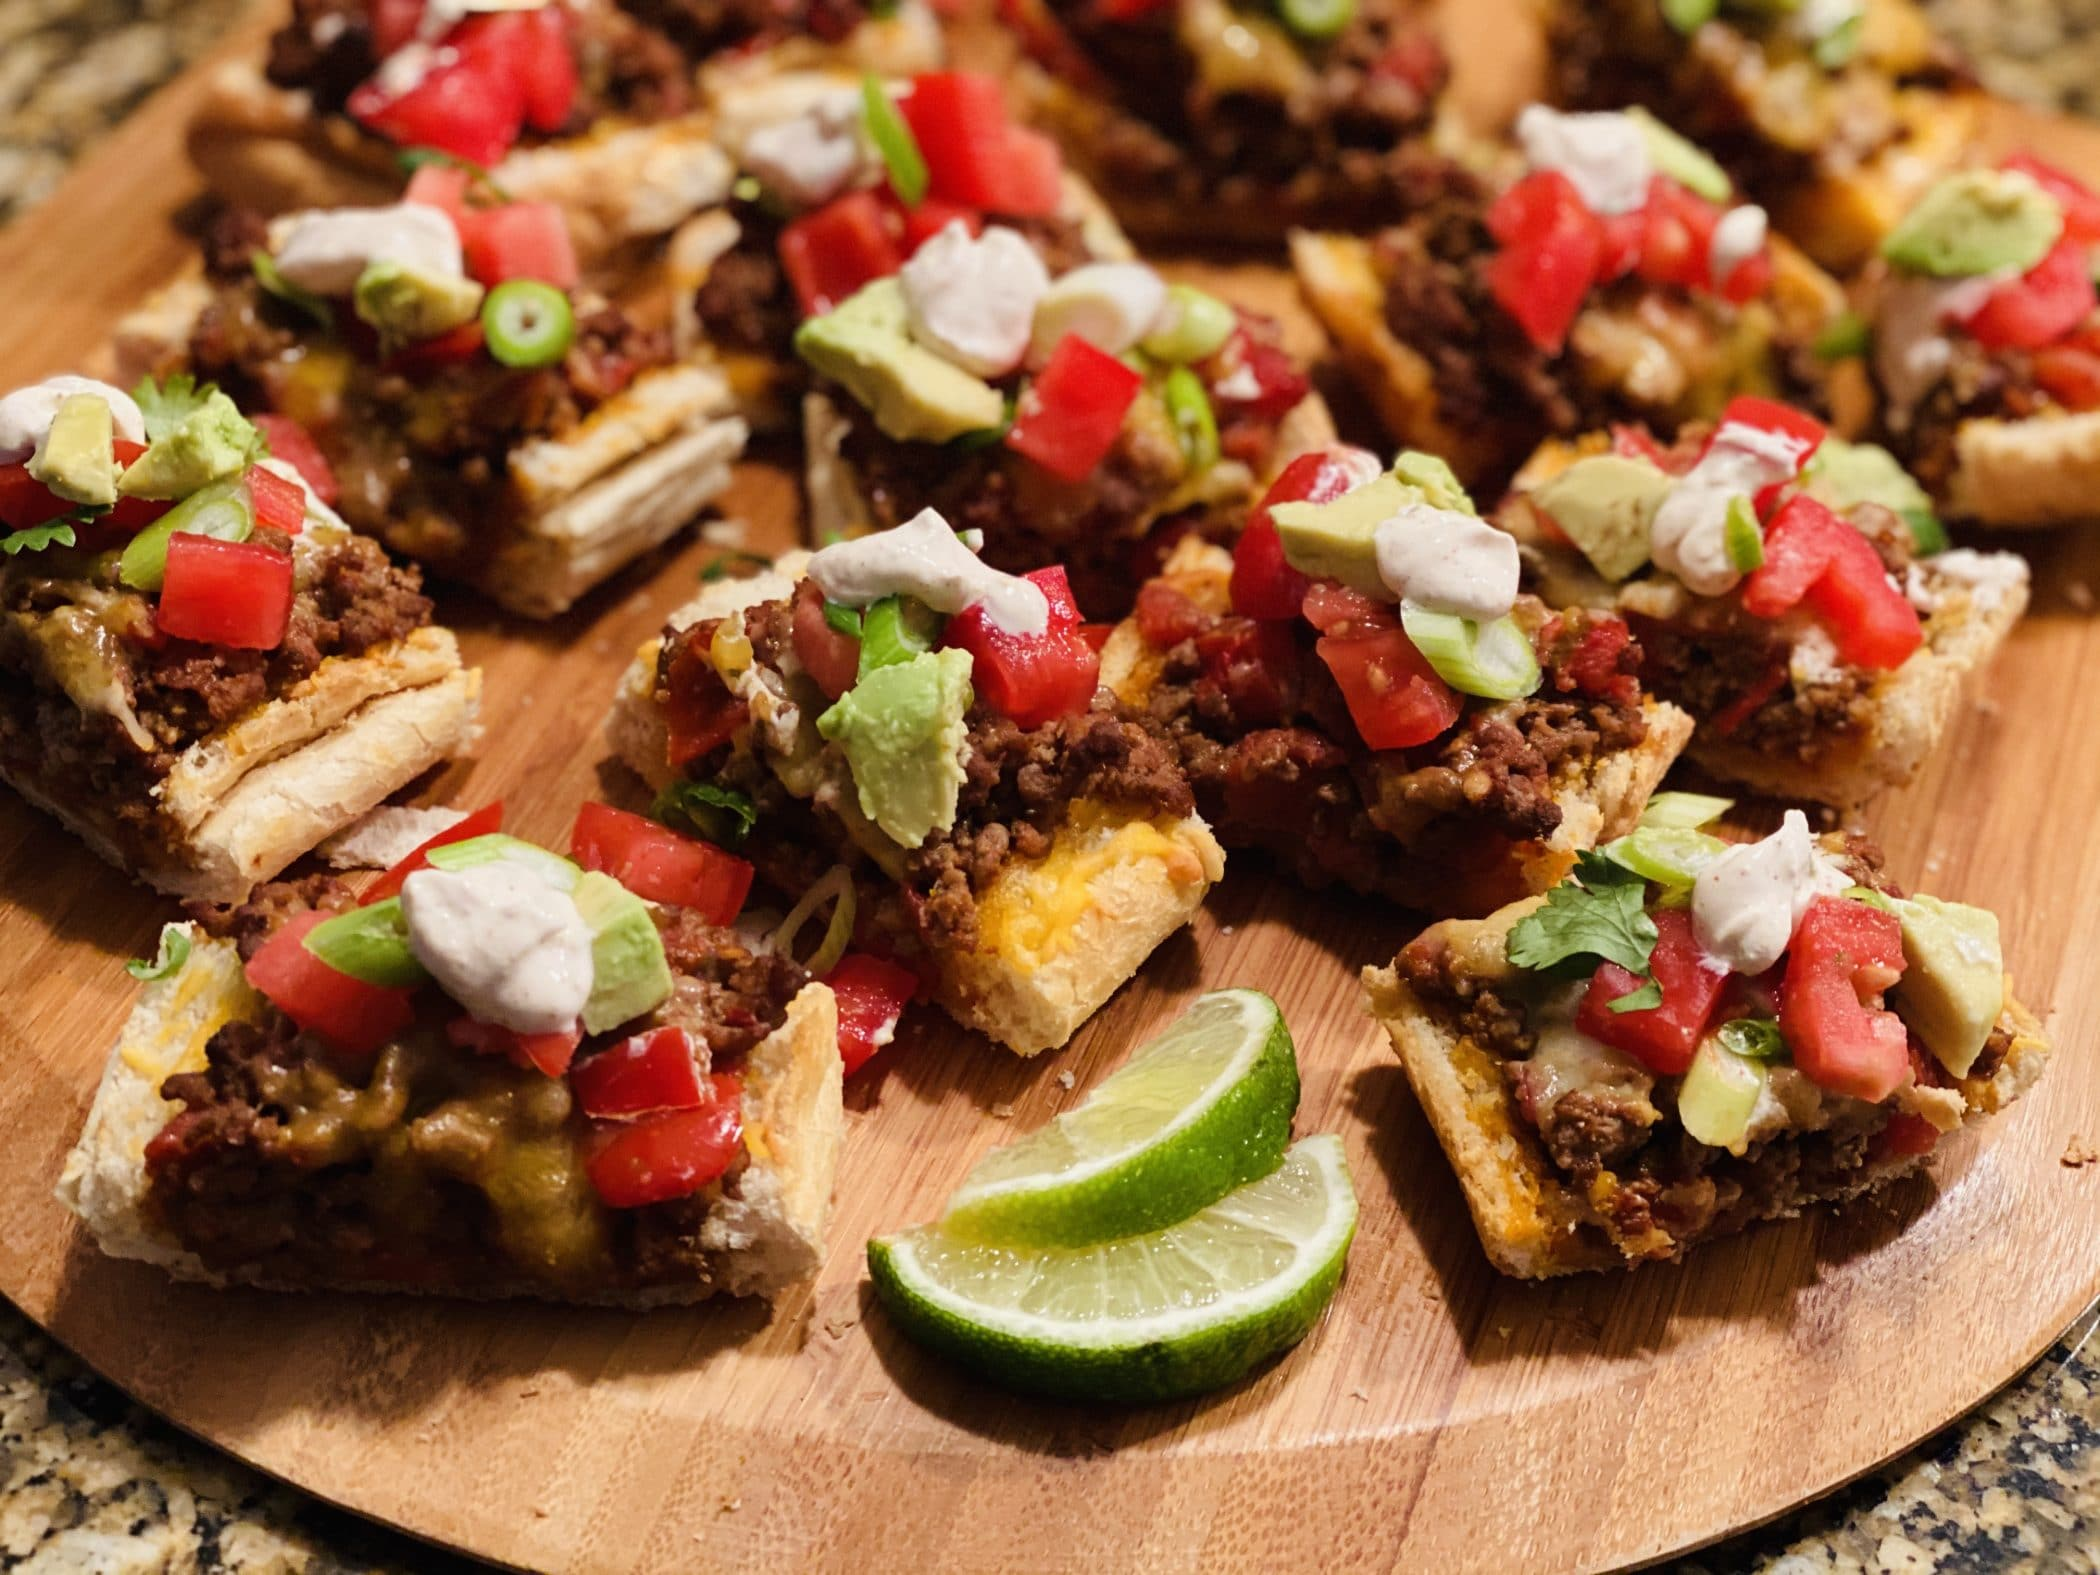 appetizer size servings of taco bread on a wooden board with lime wedges